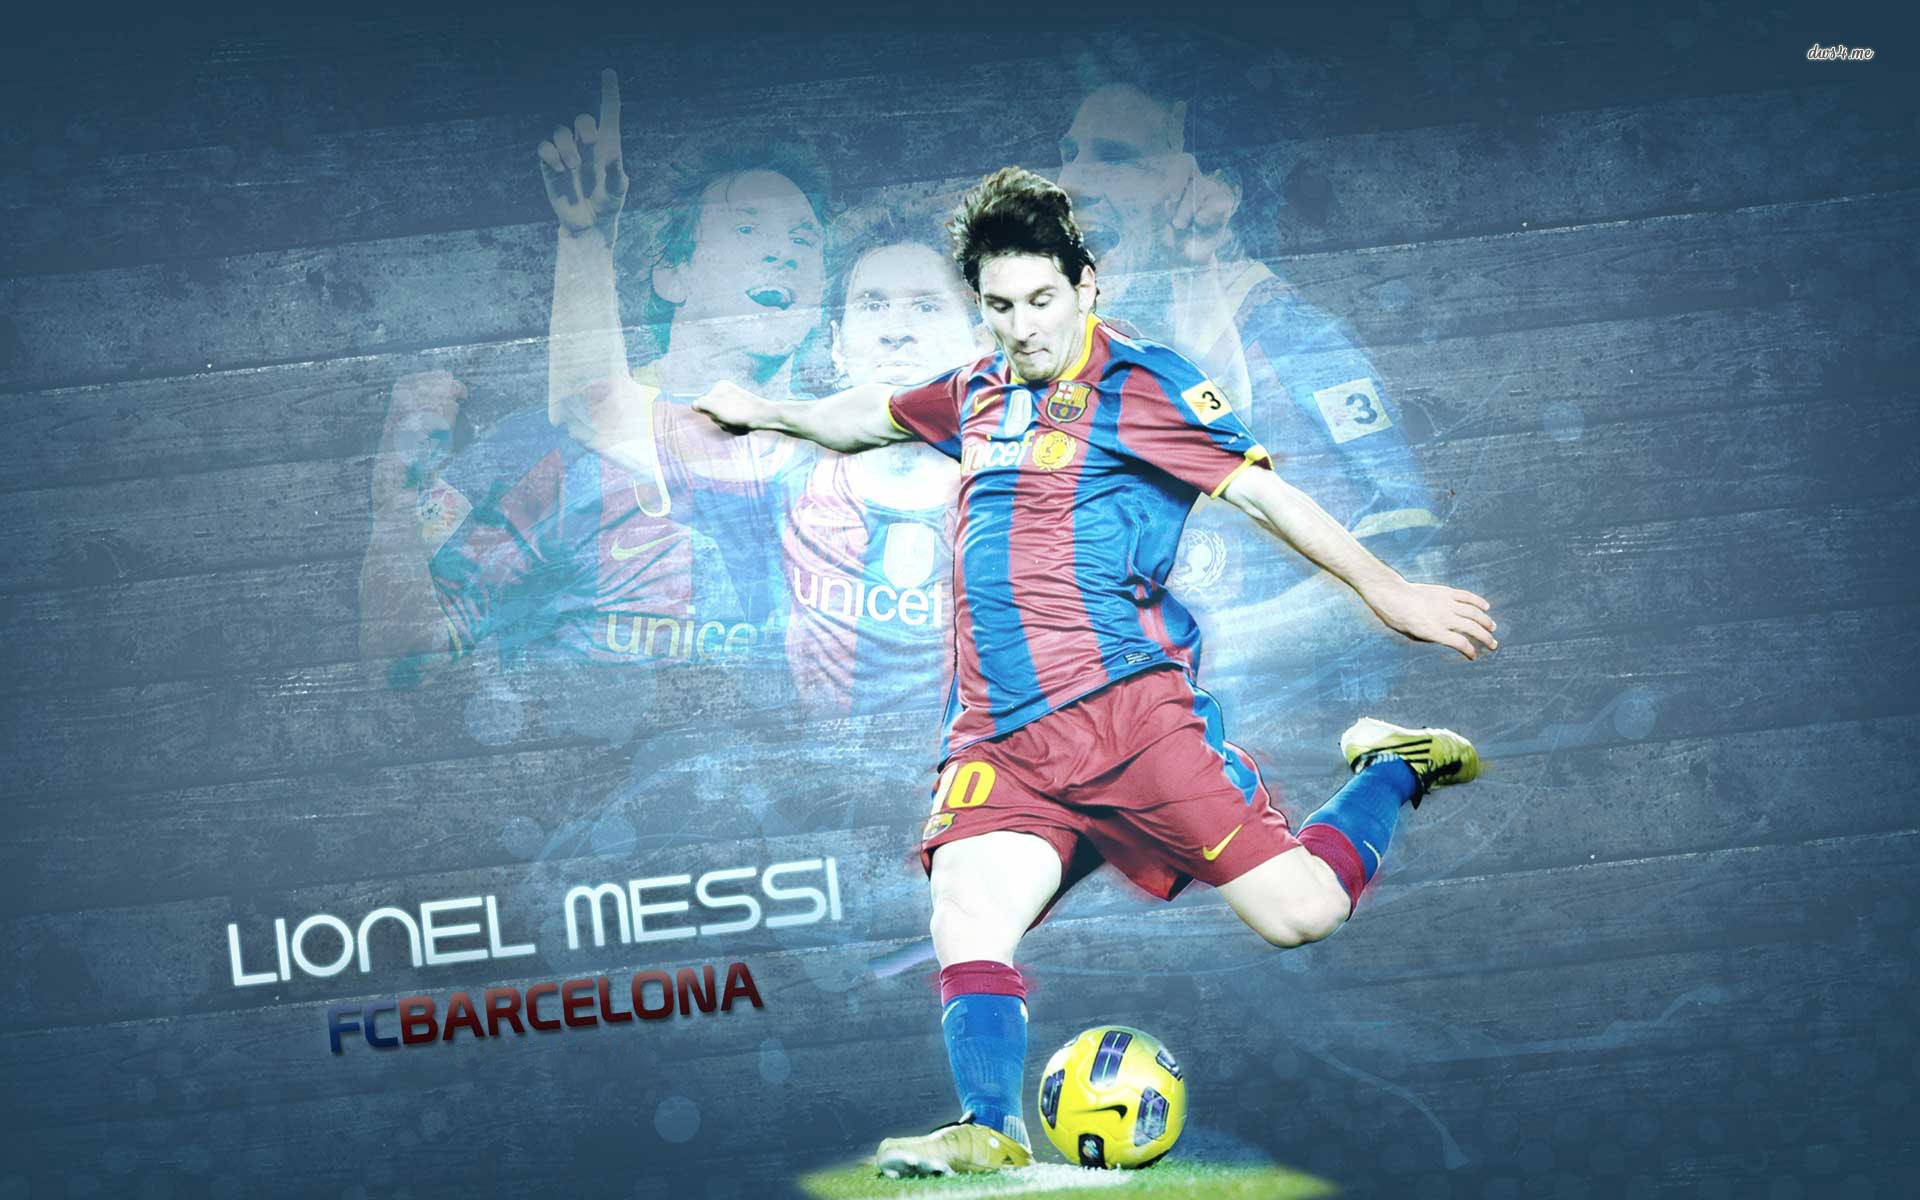 20226-lionel-messi-1920x1200-sport-wallpaper